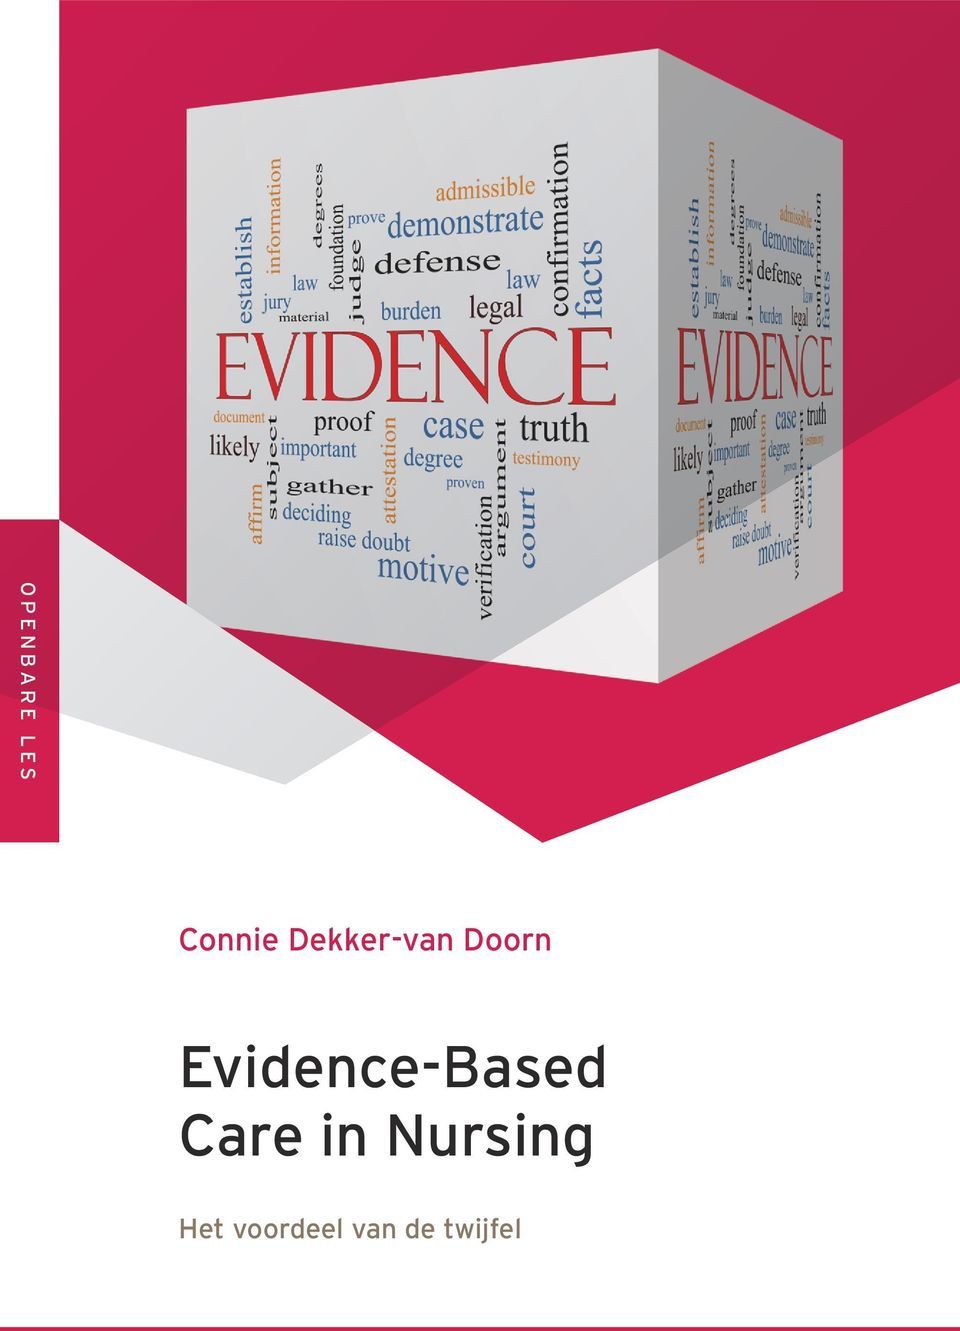 Evidence-Based Care in